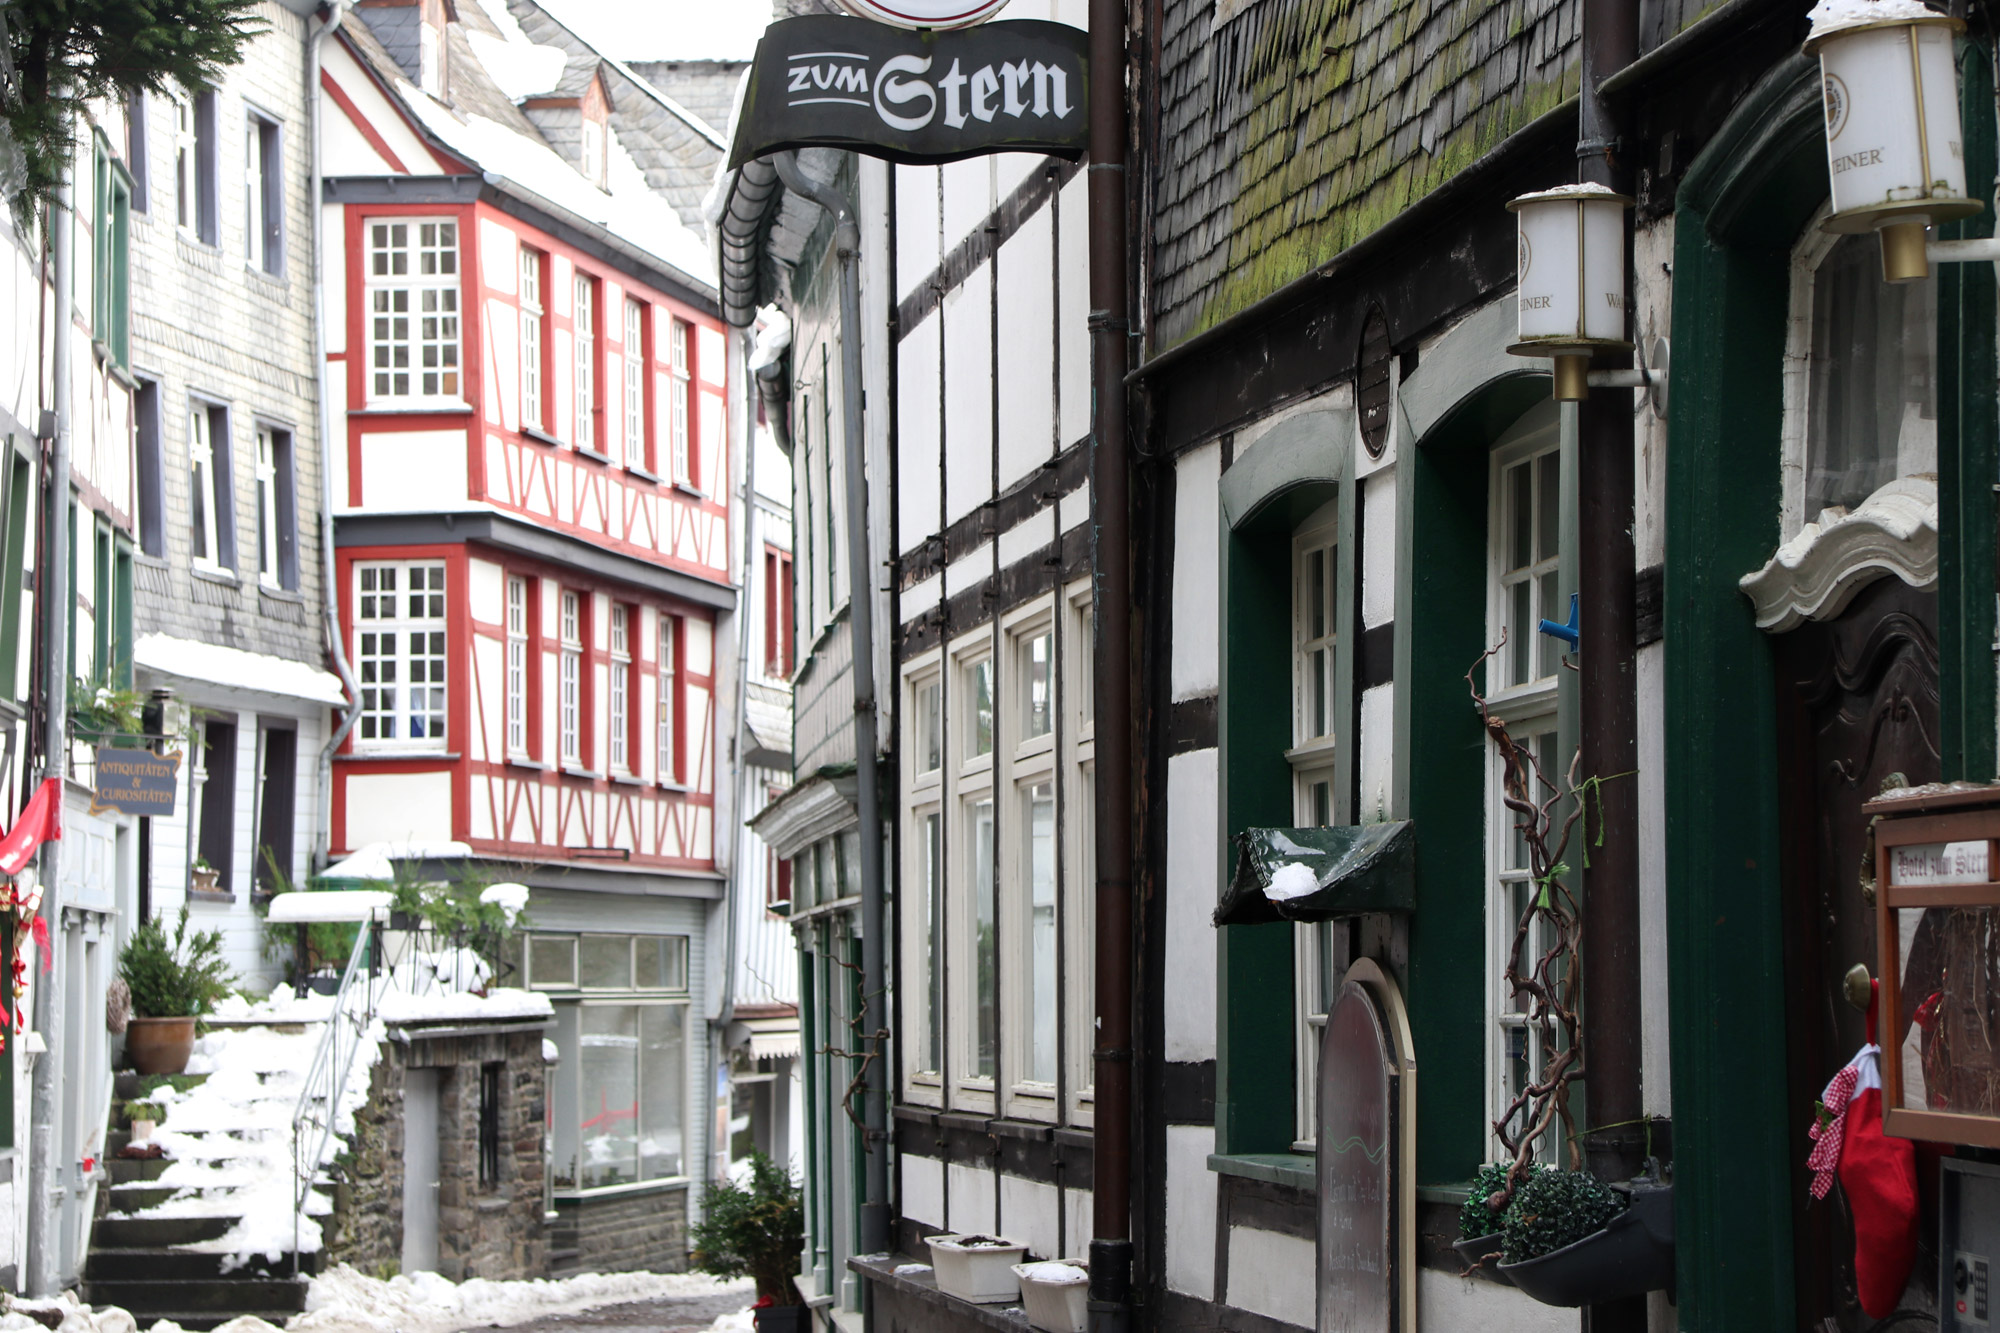 Stedentrip Monschau - Vakwerkhuizen